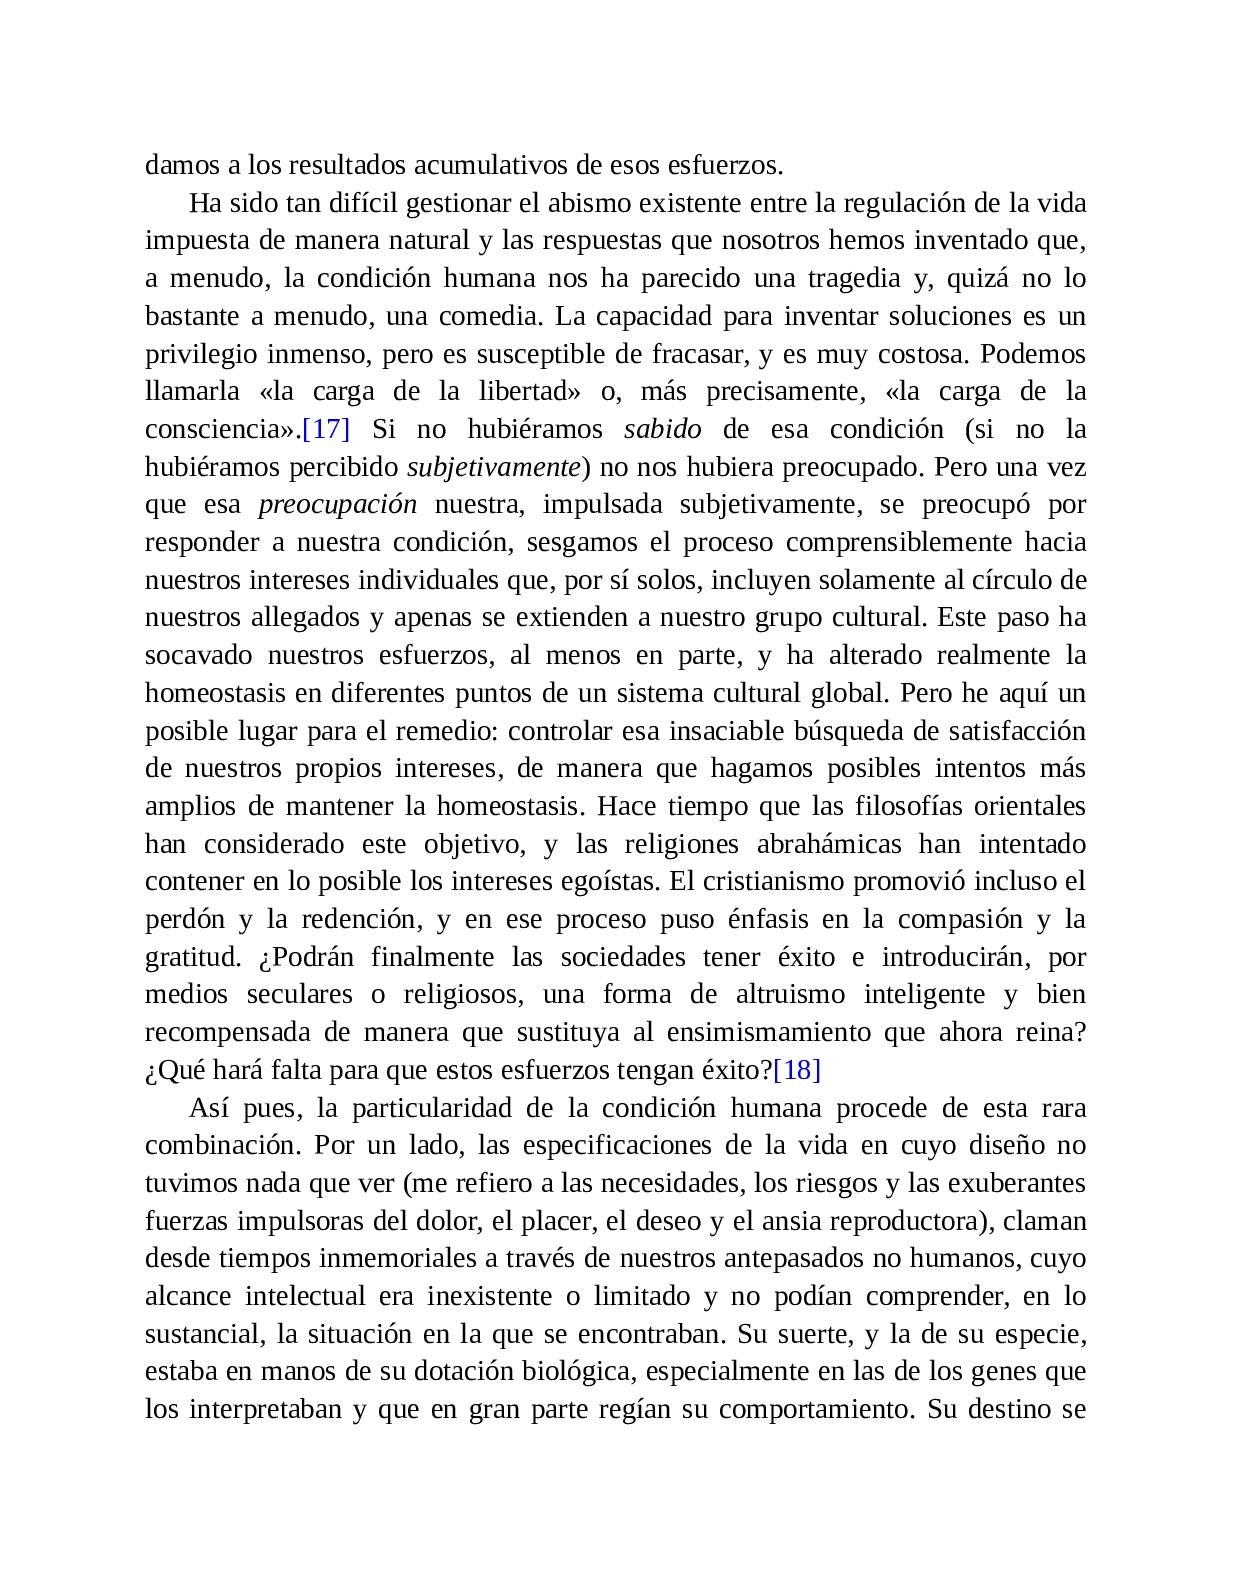 Page 230